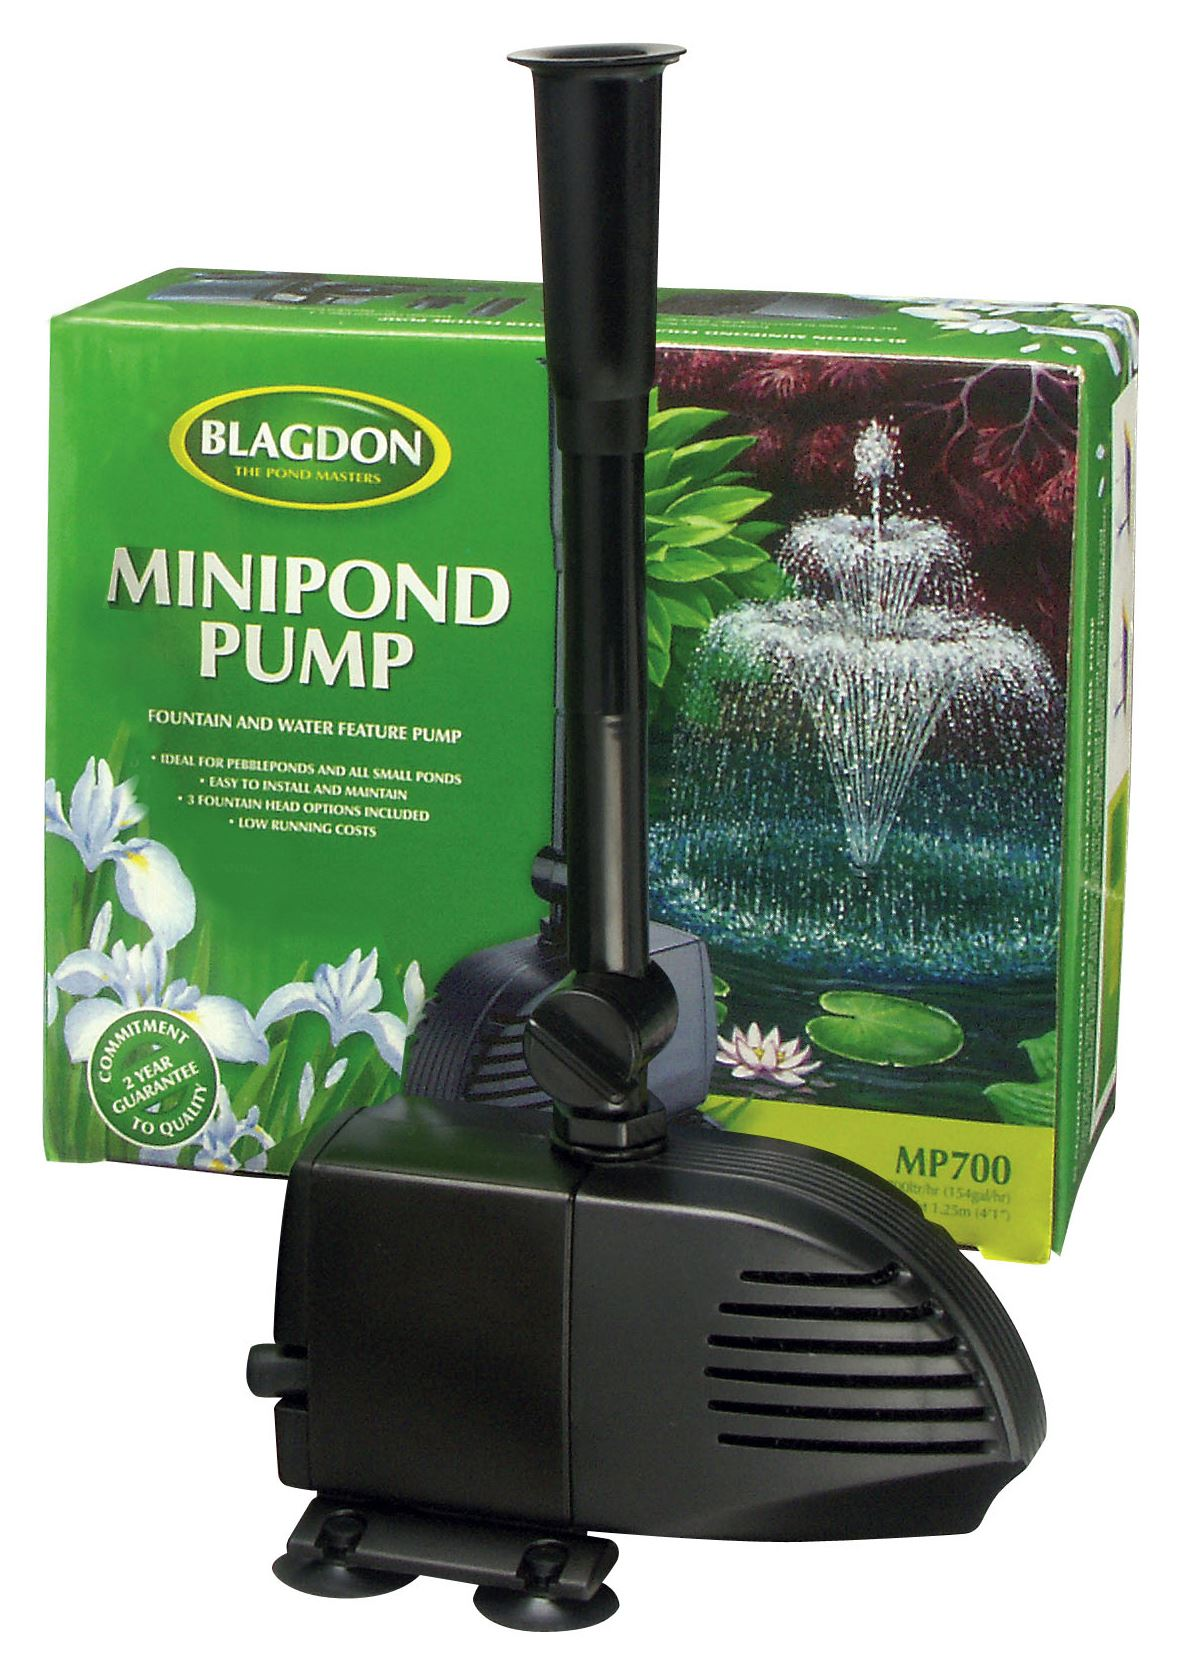 Blagdon mini pond koi fish pump for fountains water Water pumps for ponds and fountains